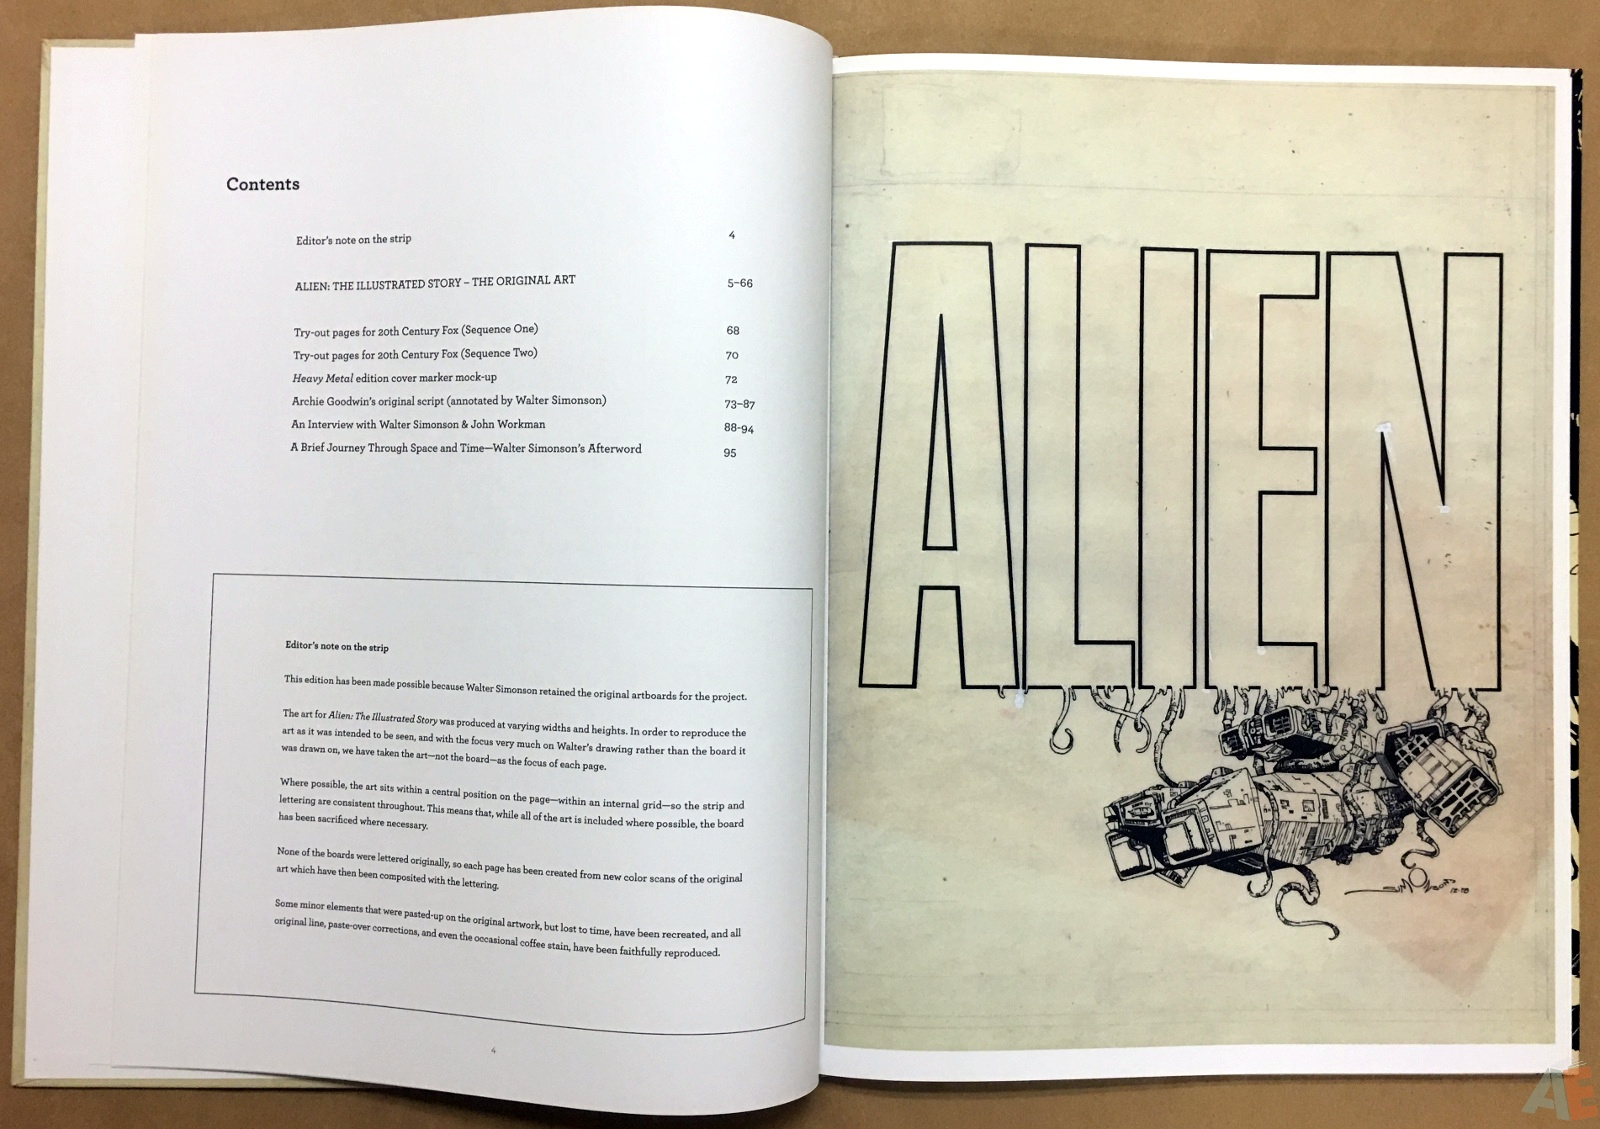 Alien: The Illustrated Story, The Original Art Edition 8